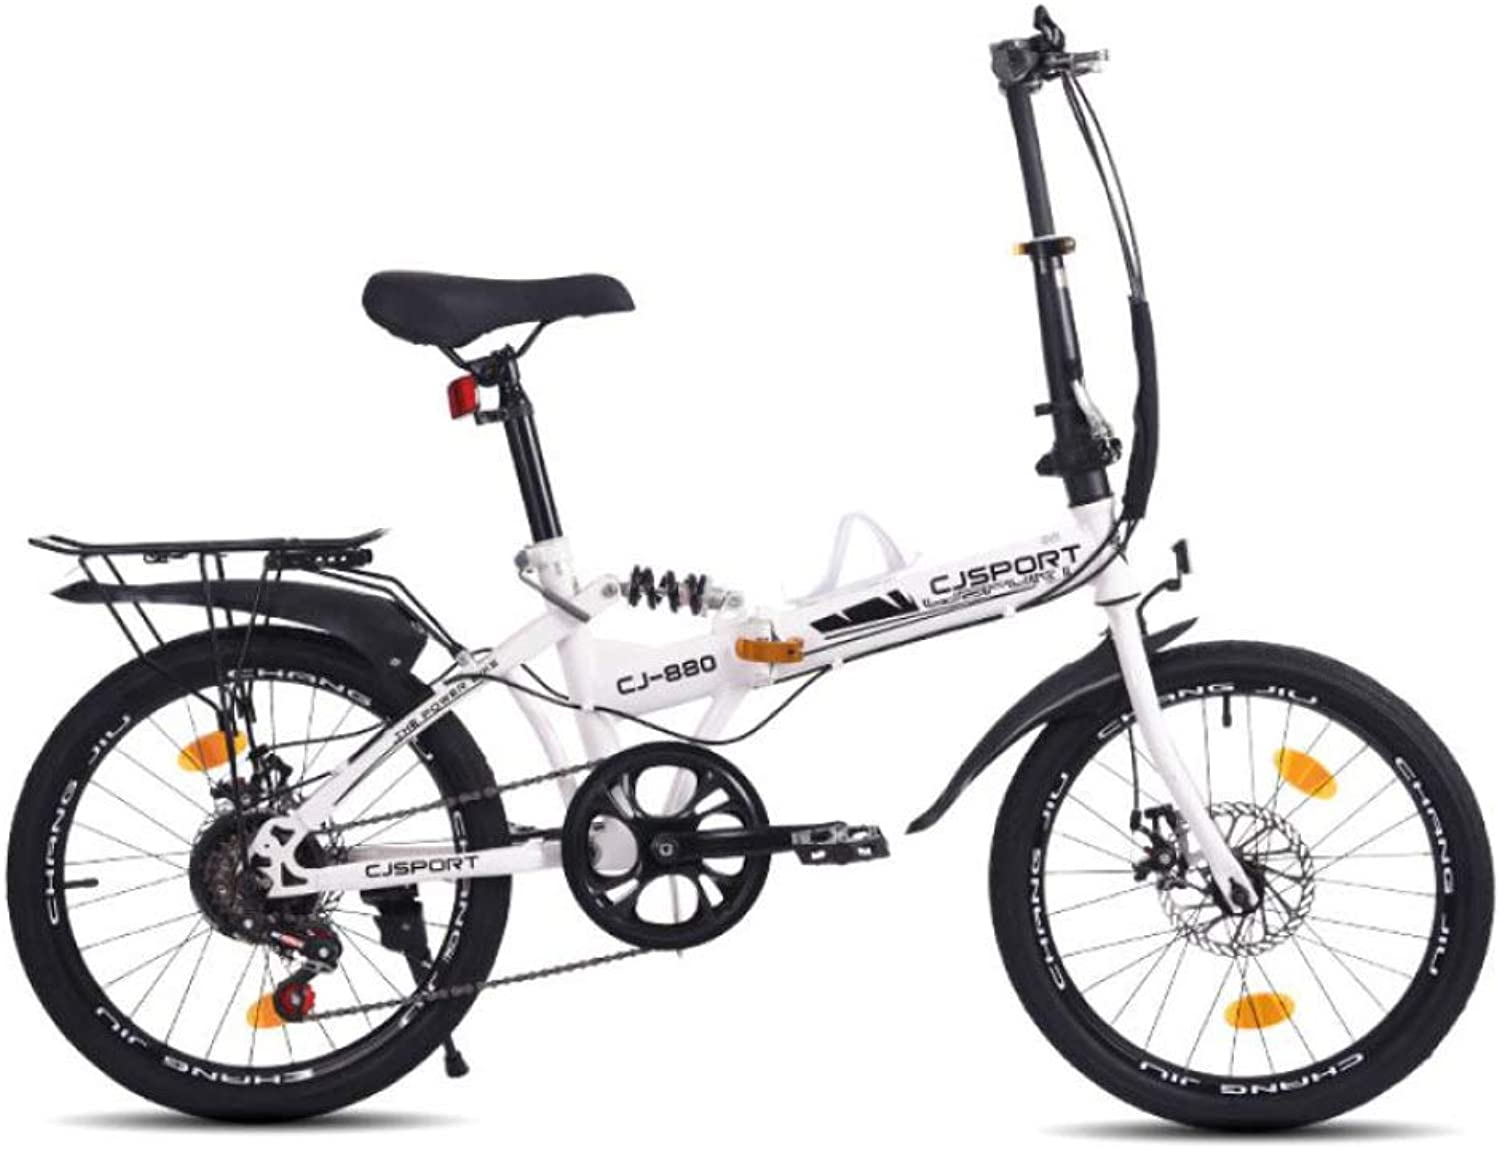 AOHMG Folding Bike Adult 6Speed Foldable Bike, Lightweight Durable Frame Comfort Saddle